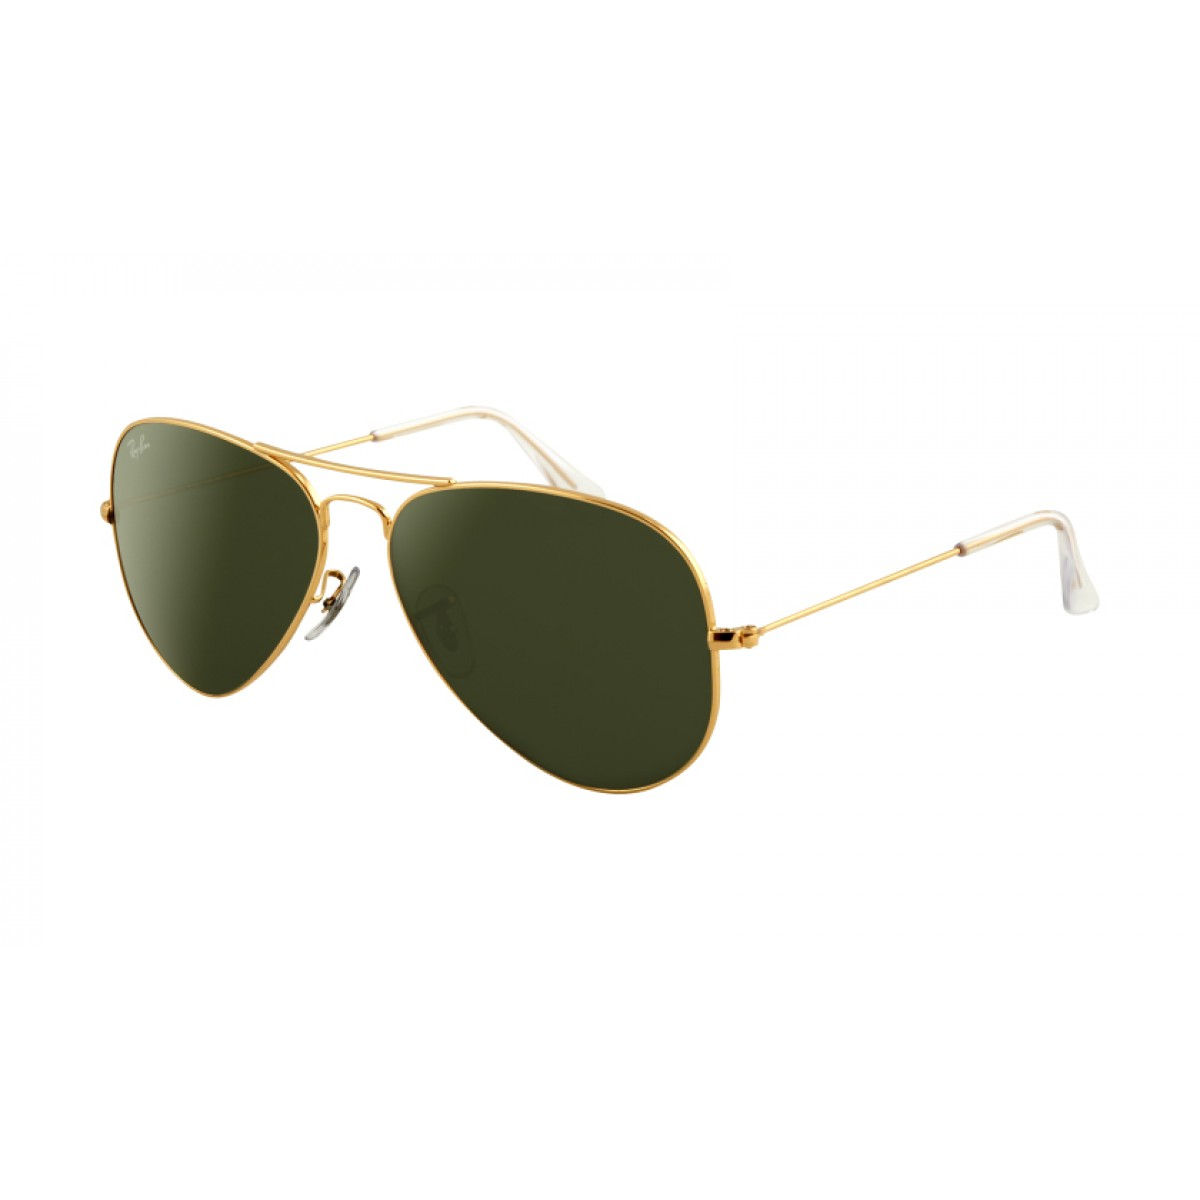 Police Gold Frame Sunglasses : Stylo Golden Frame Aviators Sunglasses (Golden Green)